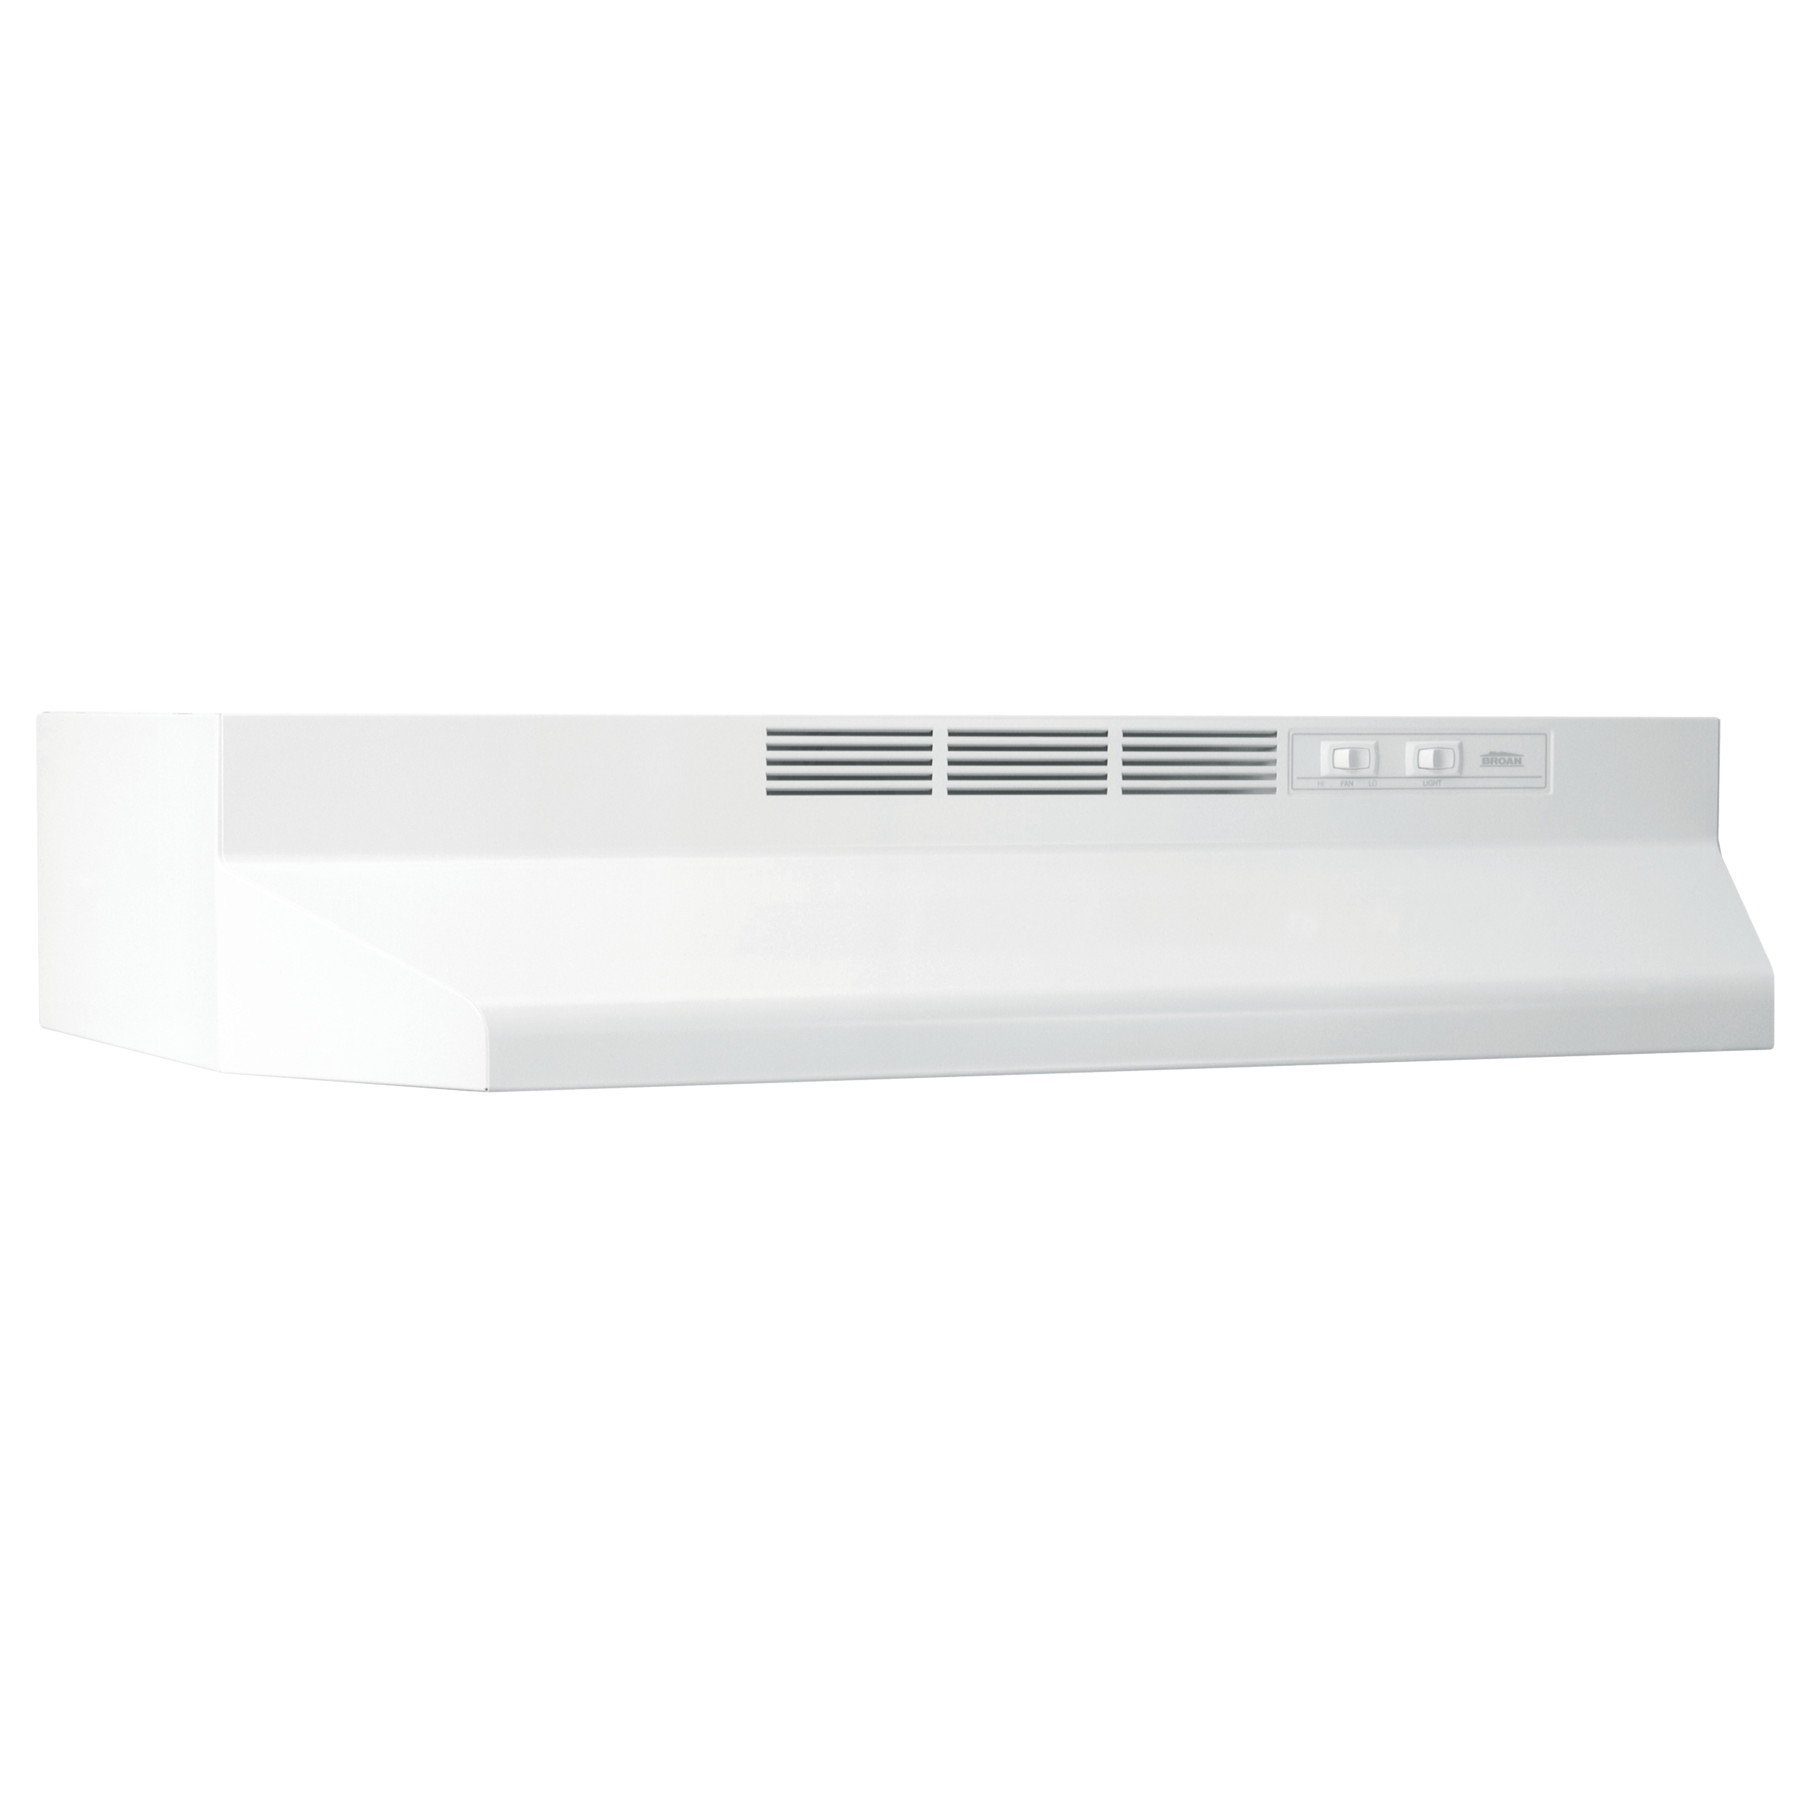 White 4.5 Sones Exhaust Fan for Under Cabinet 300 CFM 30 Slide Out Range Hood Inch Broan-NuTone Broan 153001 Silhouette Insert with Light